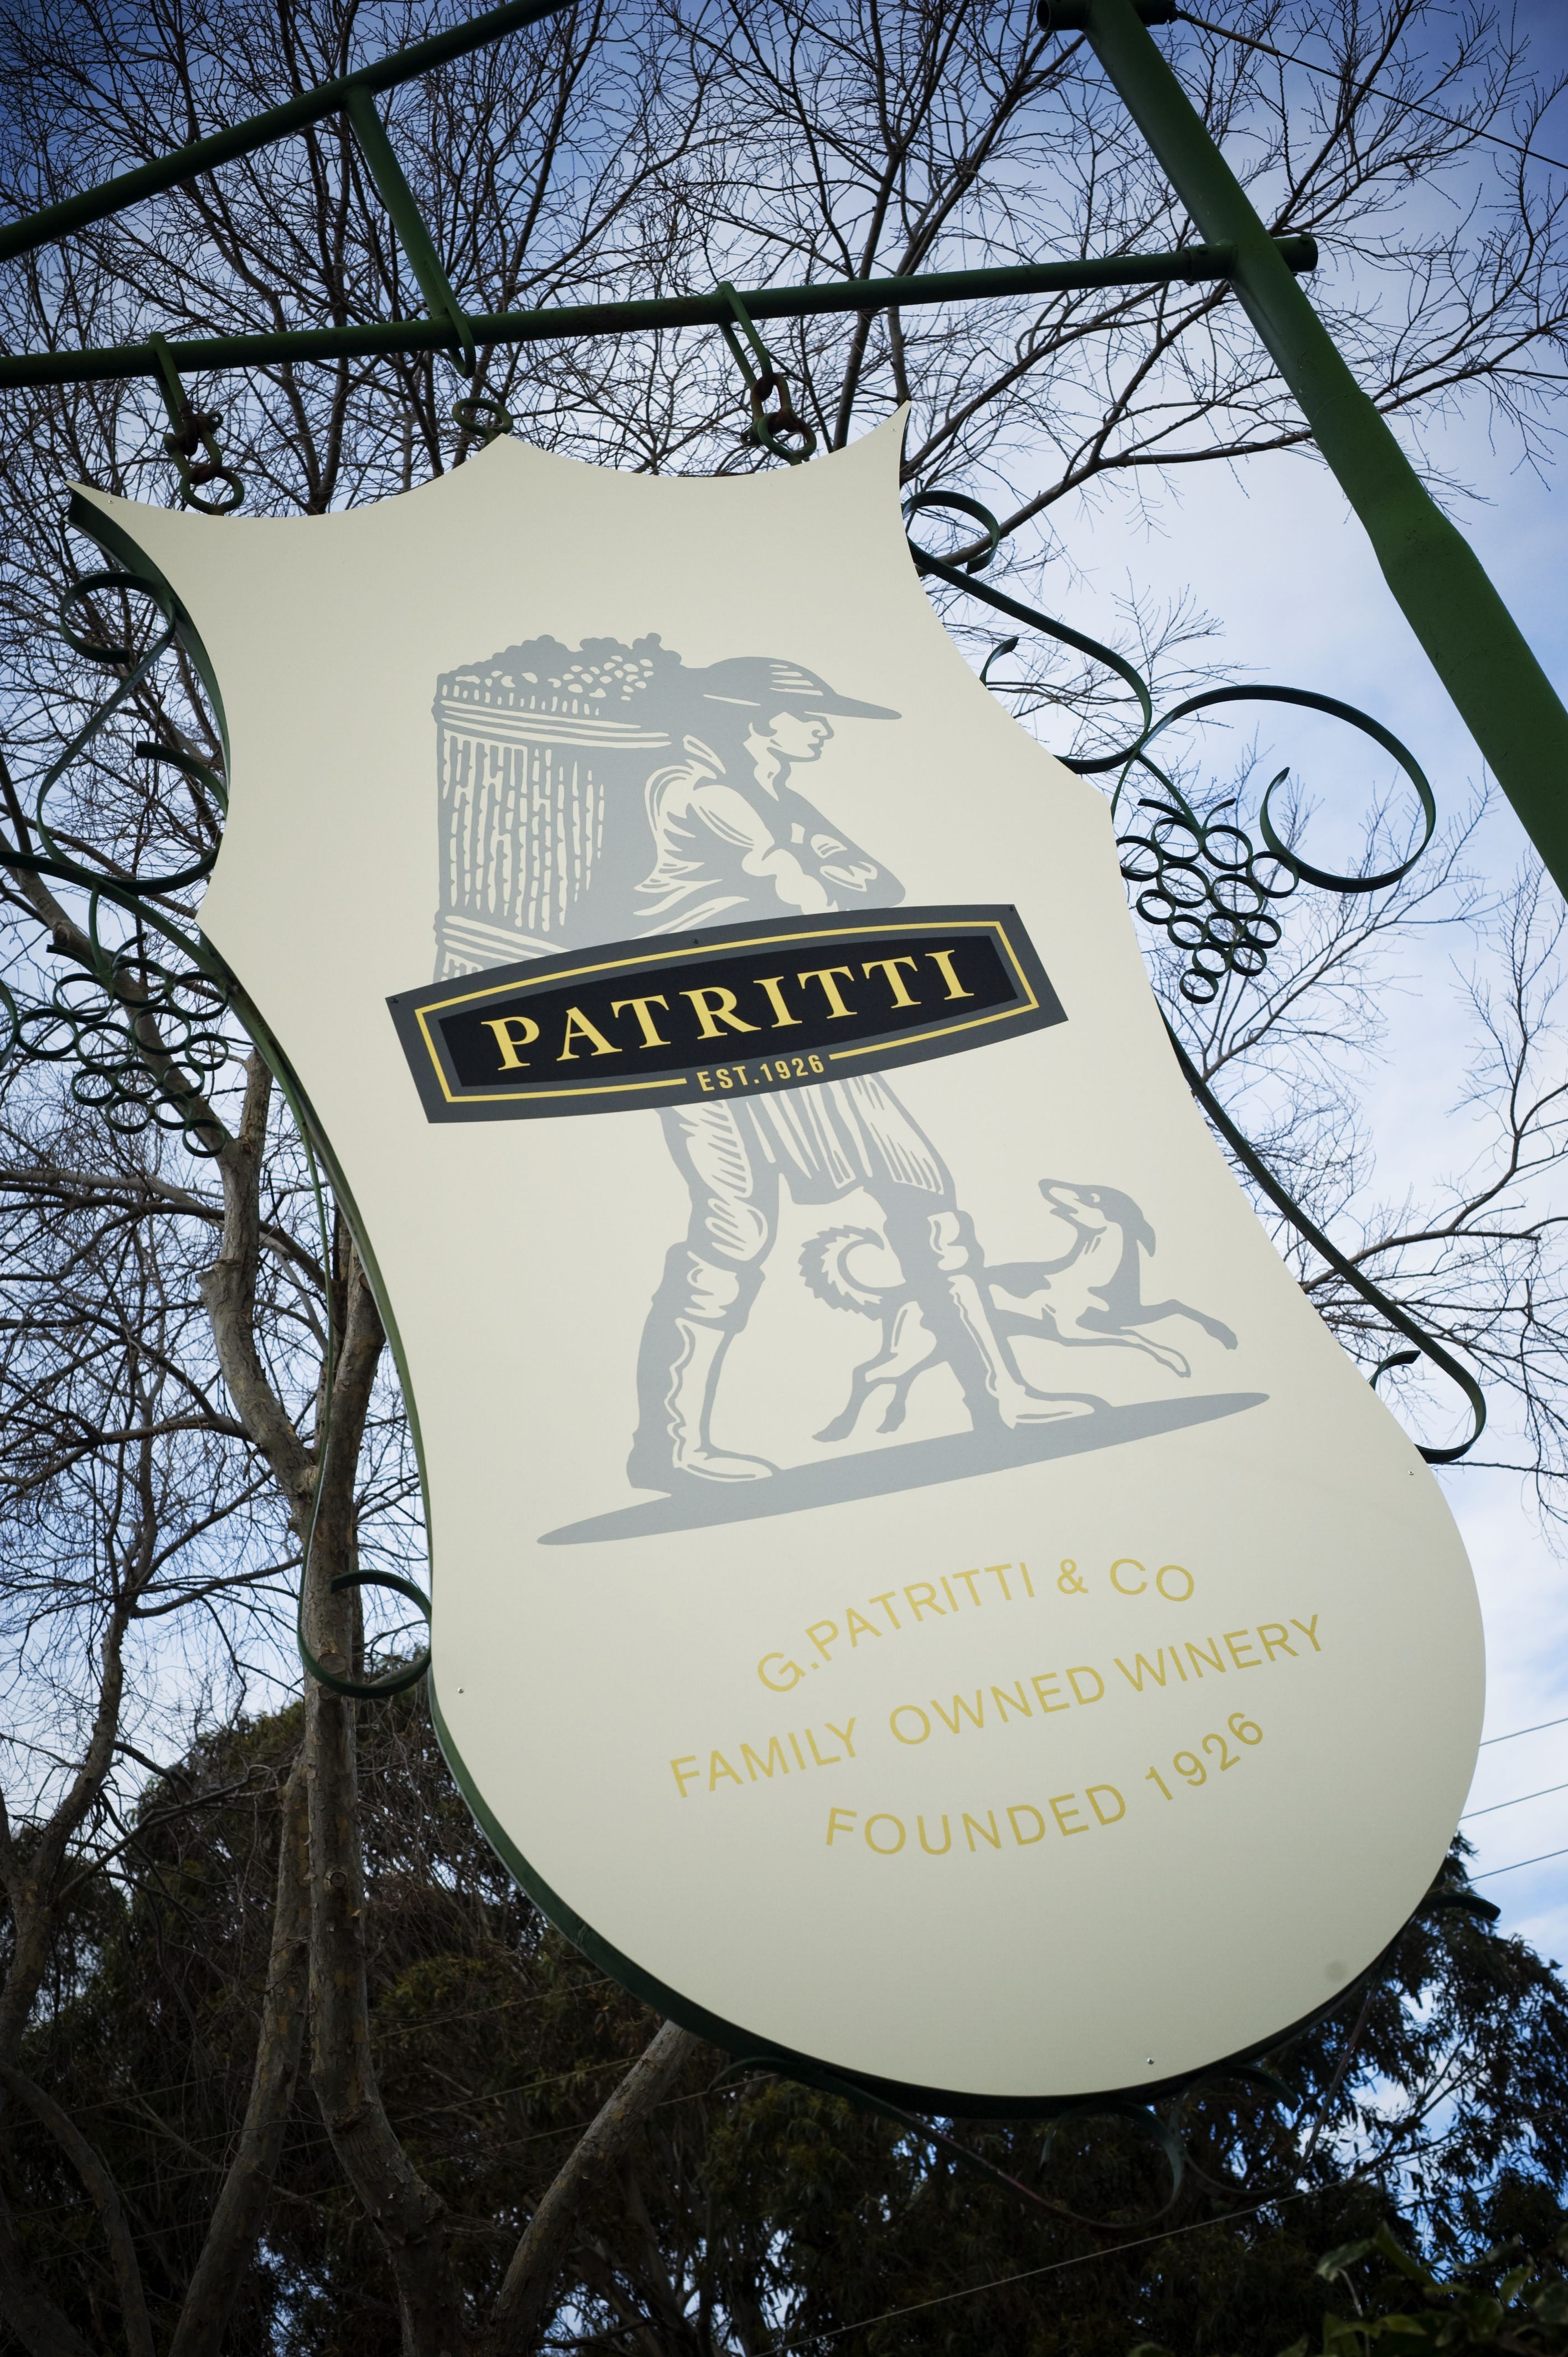 Patritti Logo and Images